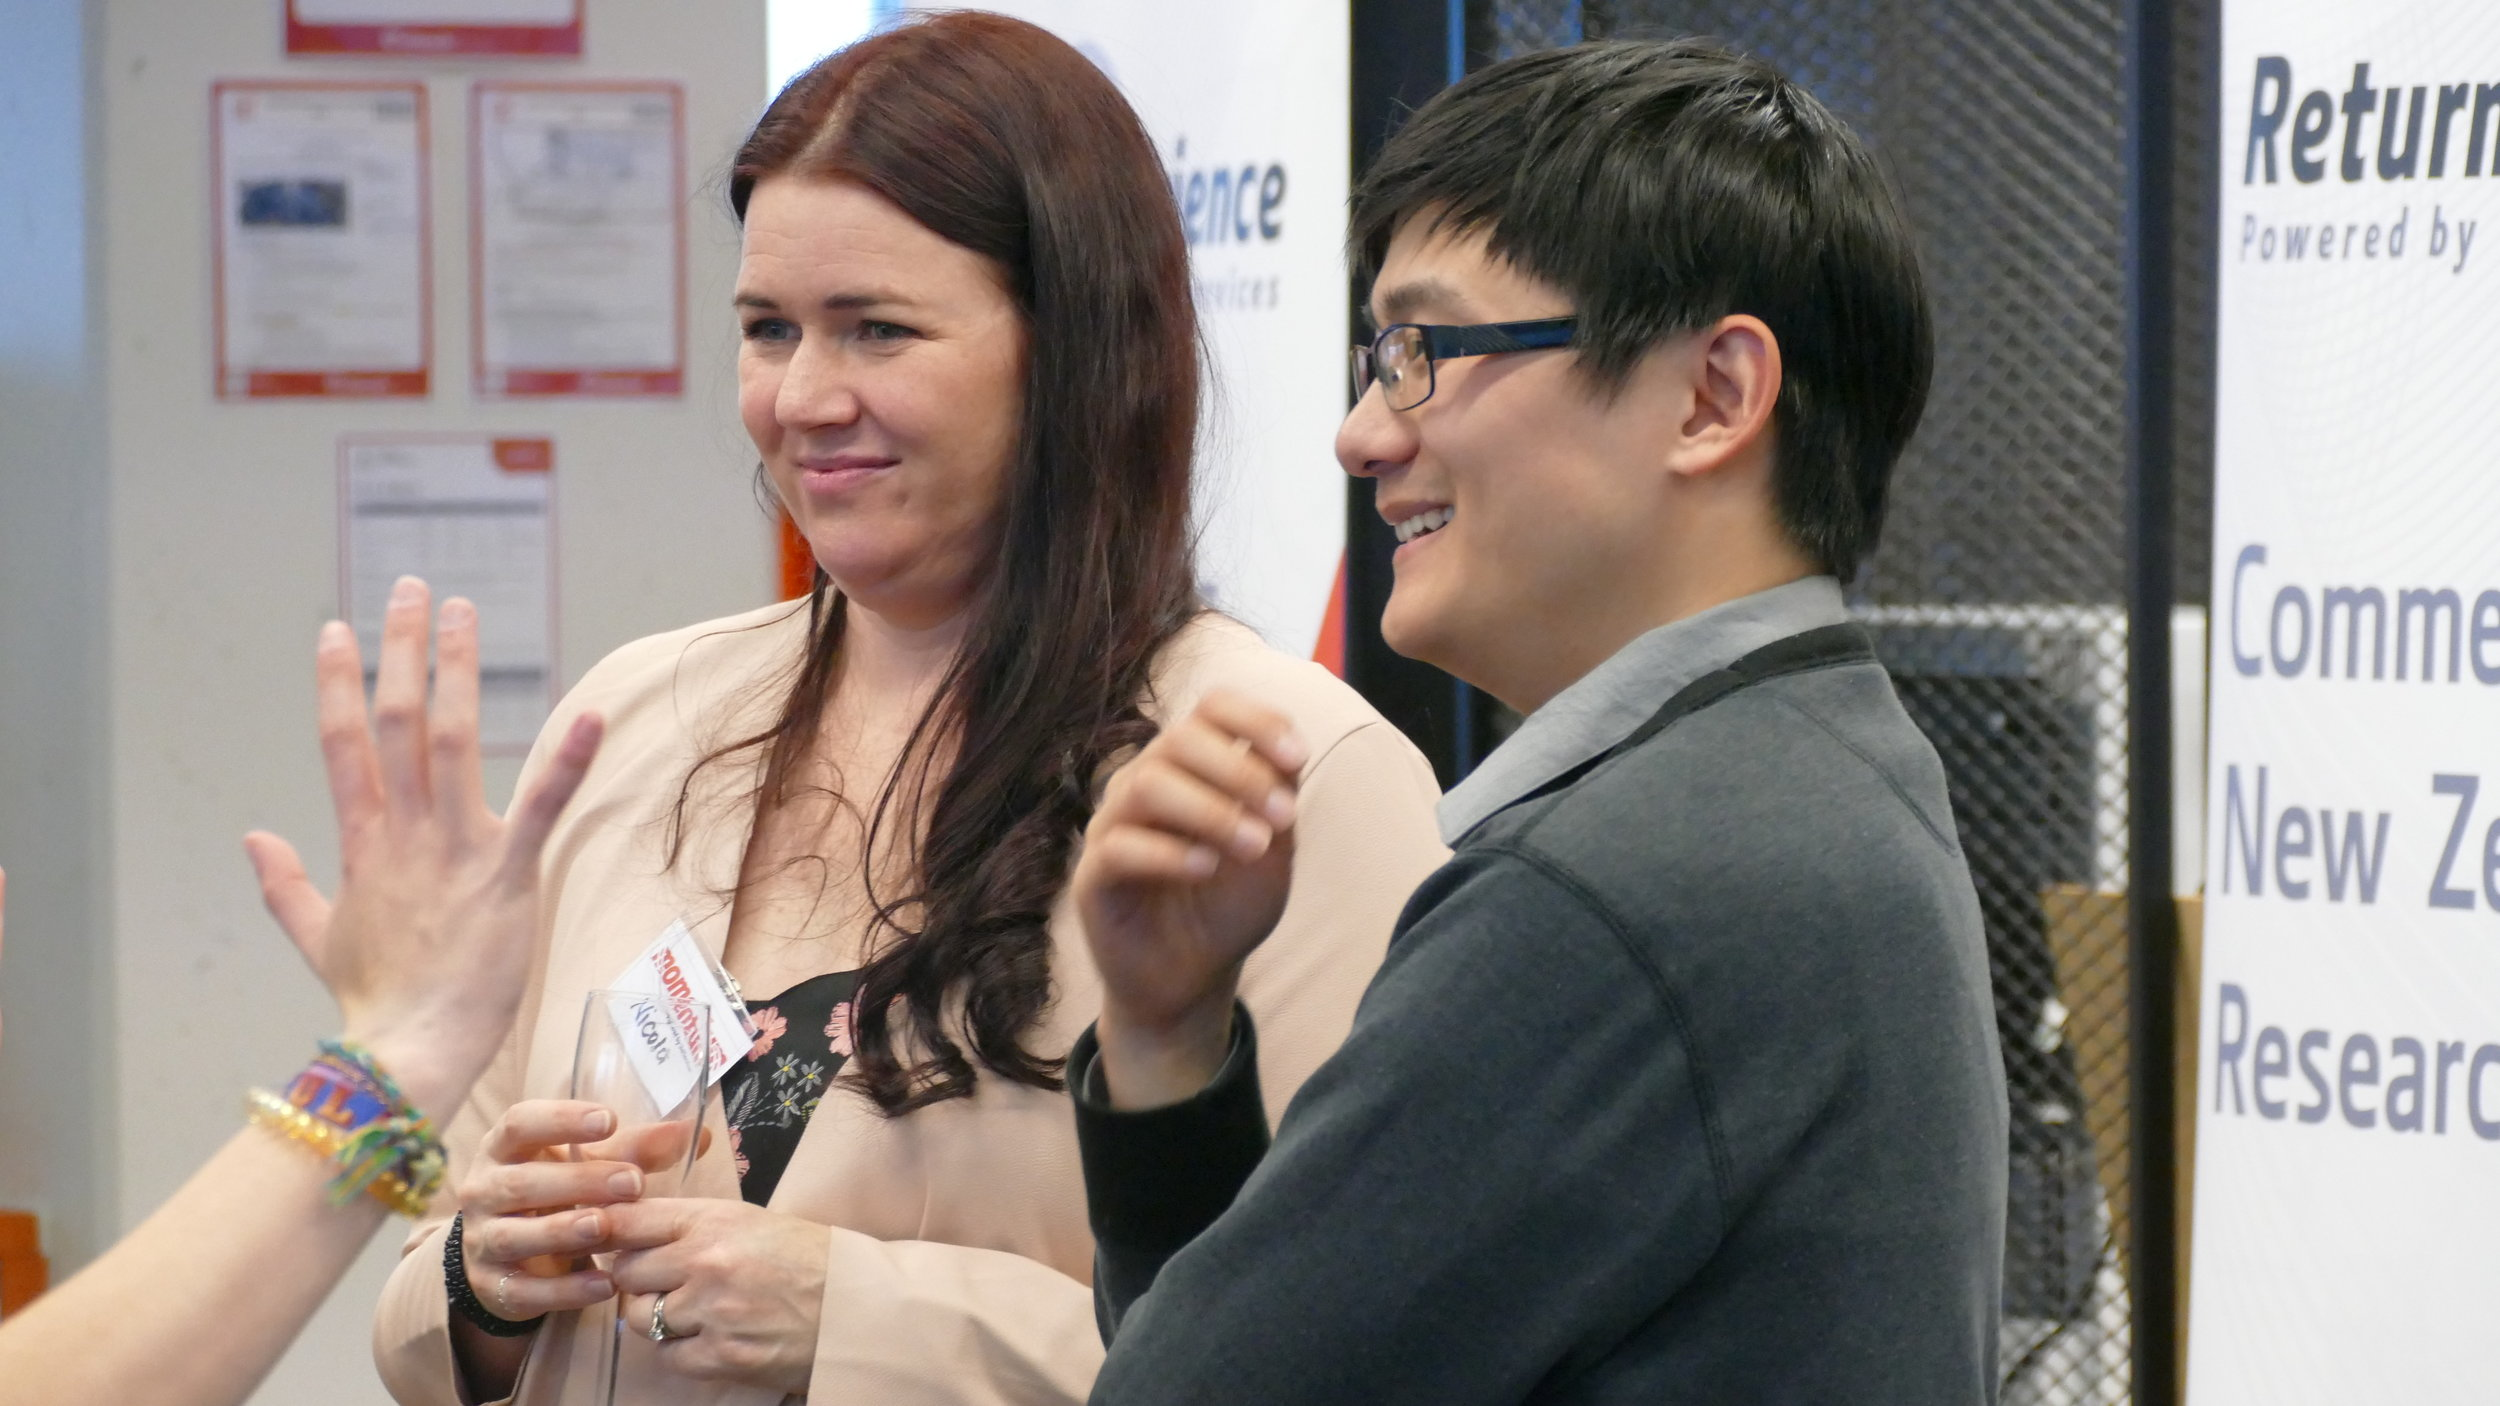 Otago Momentum - The Otago Momentum Investment Committee is the latest addition to the Momentum family. It will have members from Otago University - including post docs, and excellent innovators and entrepreneurs from the ecosystem